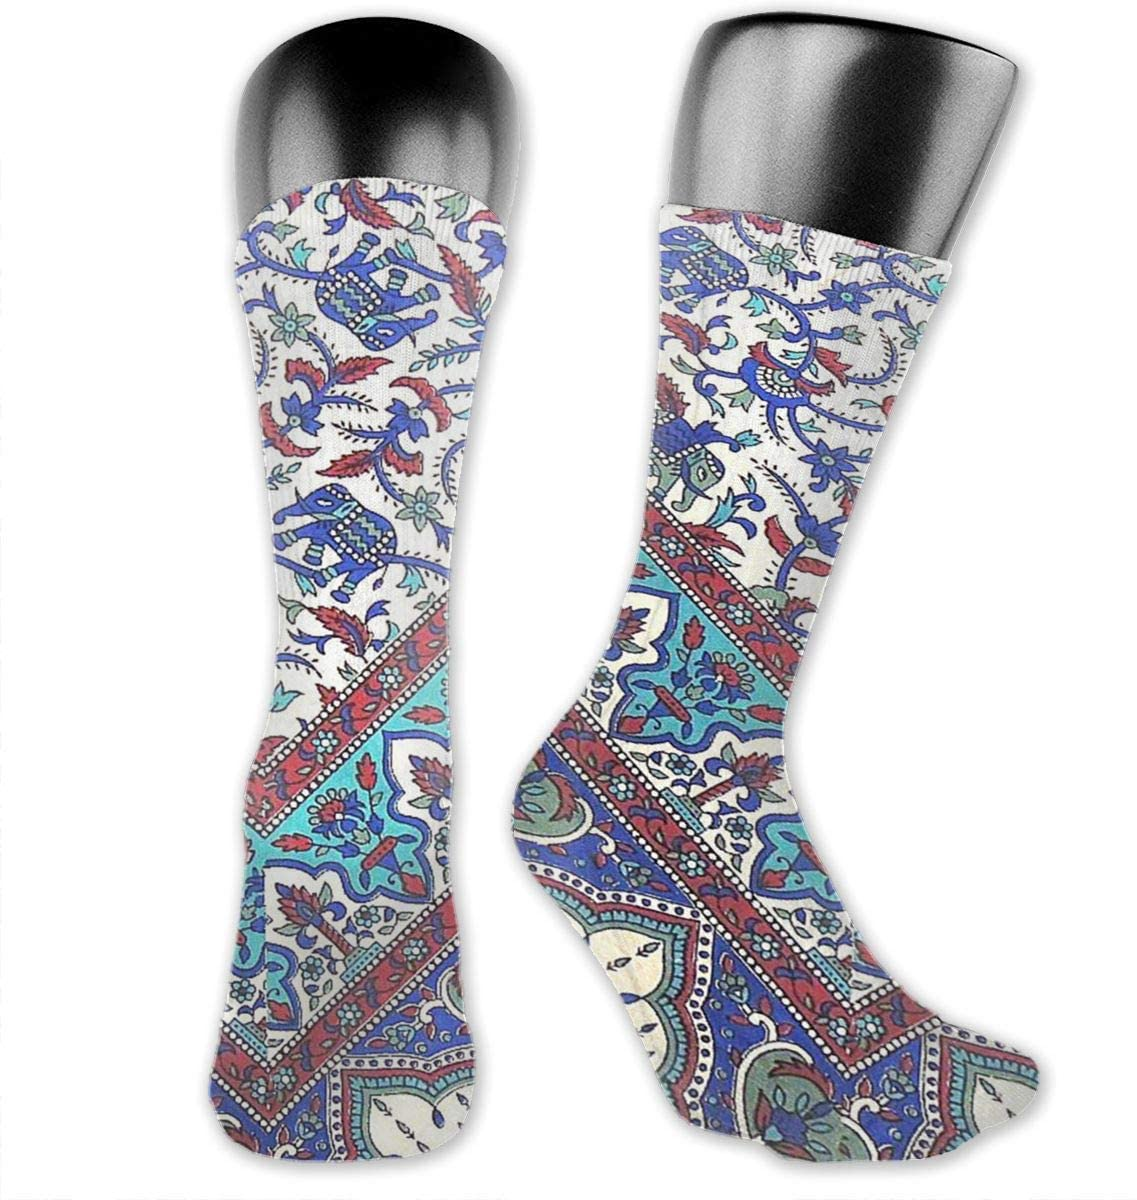 Indian Elephant Unisex Outdoor Long Socks Sport Athletic Crew Socks Stockings